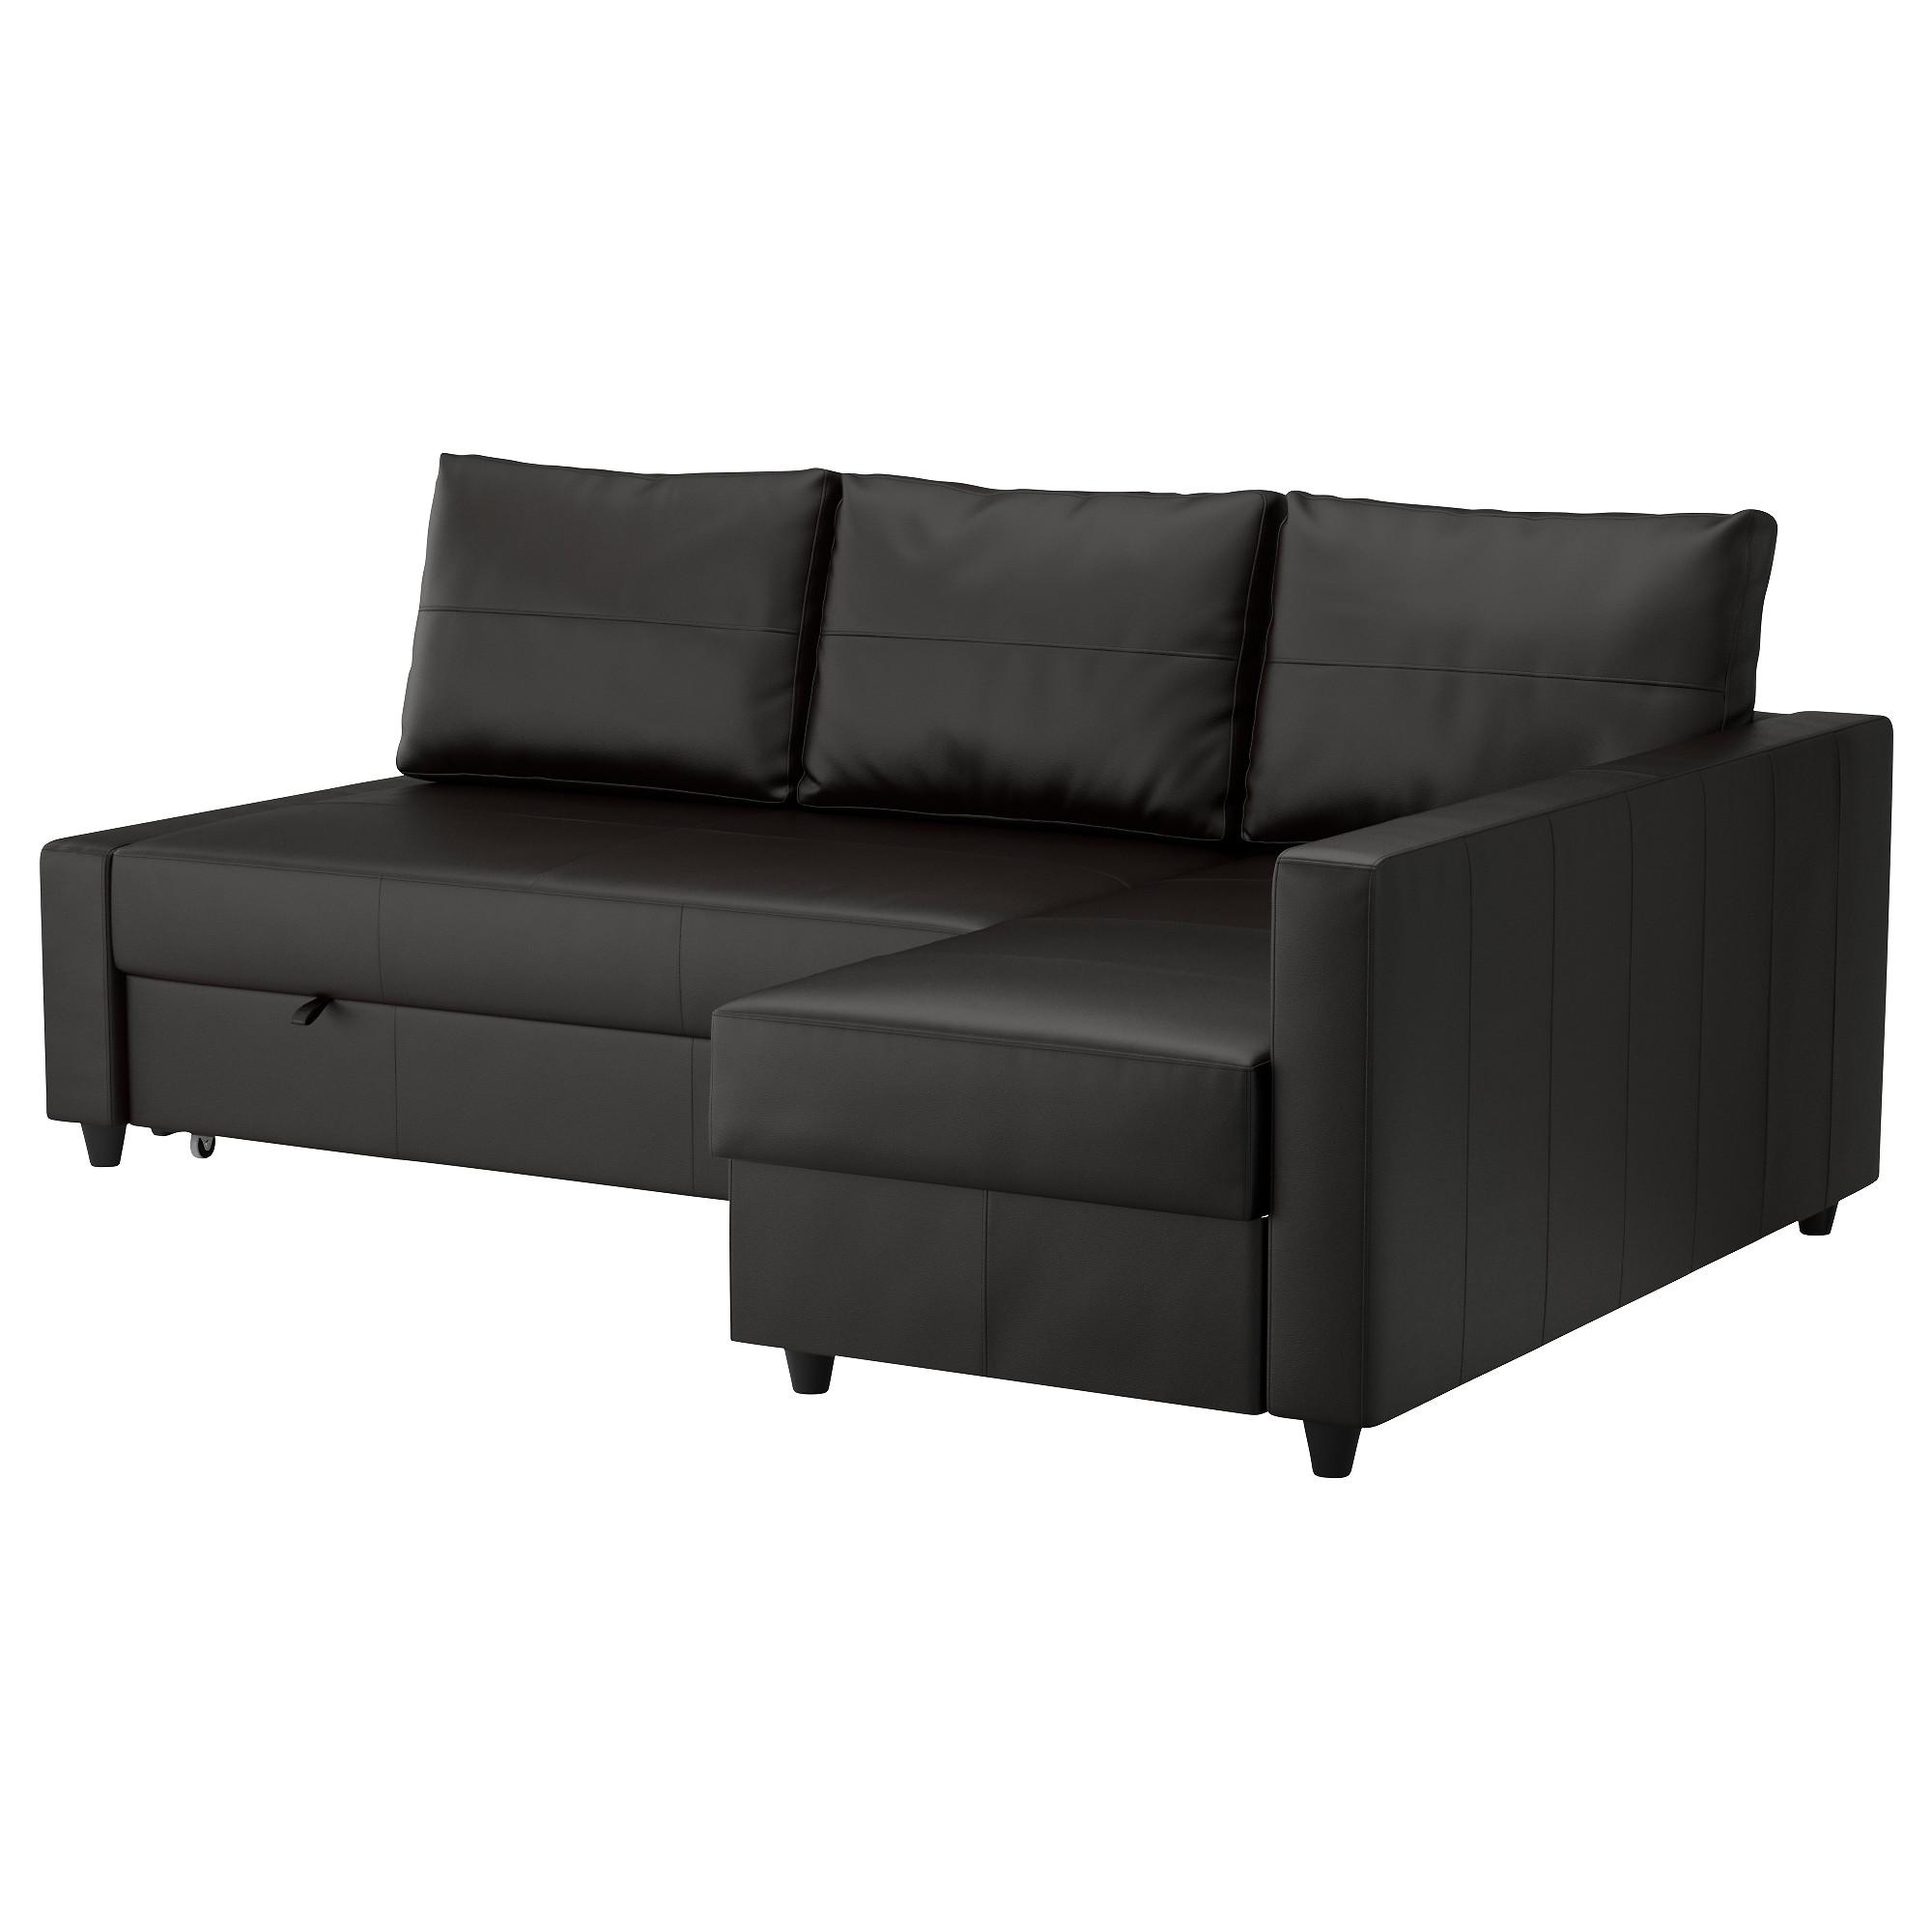 Friheten Corner Sofa Bed With Storage Bomstad Black – Ikea With Regard To Ikea Chaise Lounge Sofa (View 9 of 20)